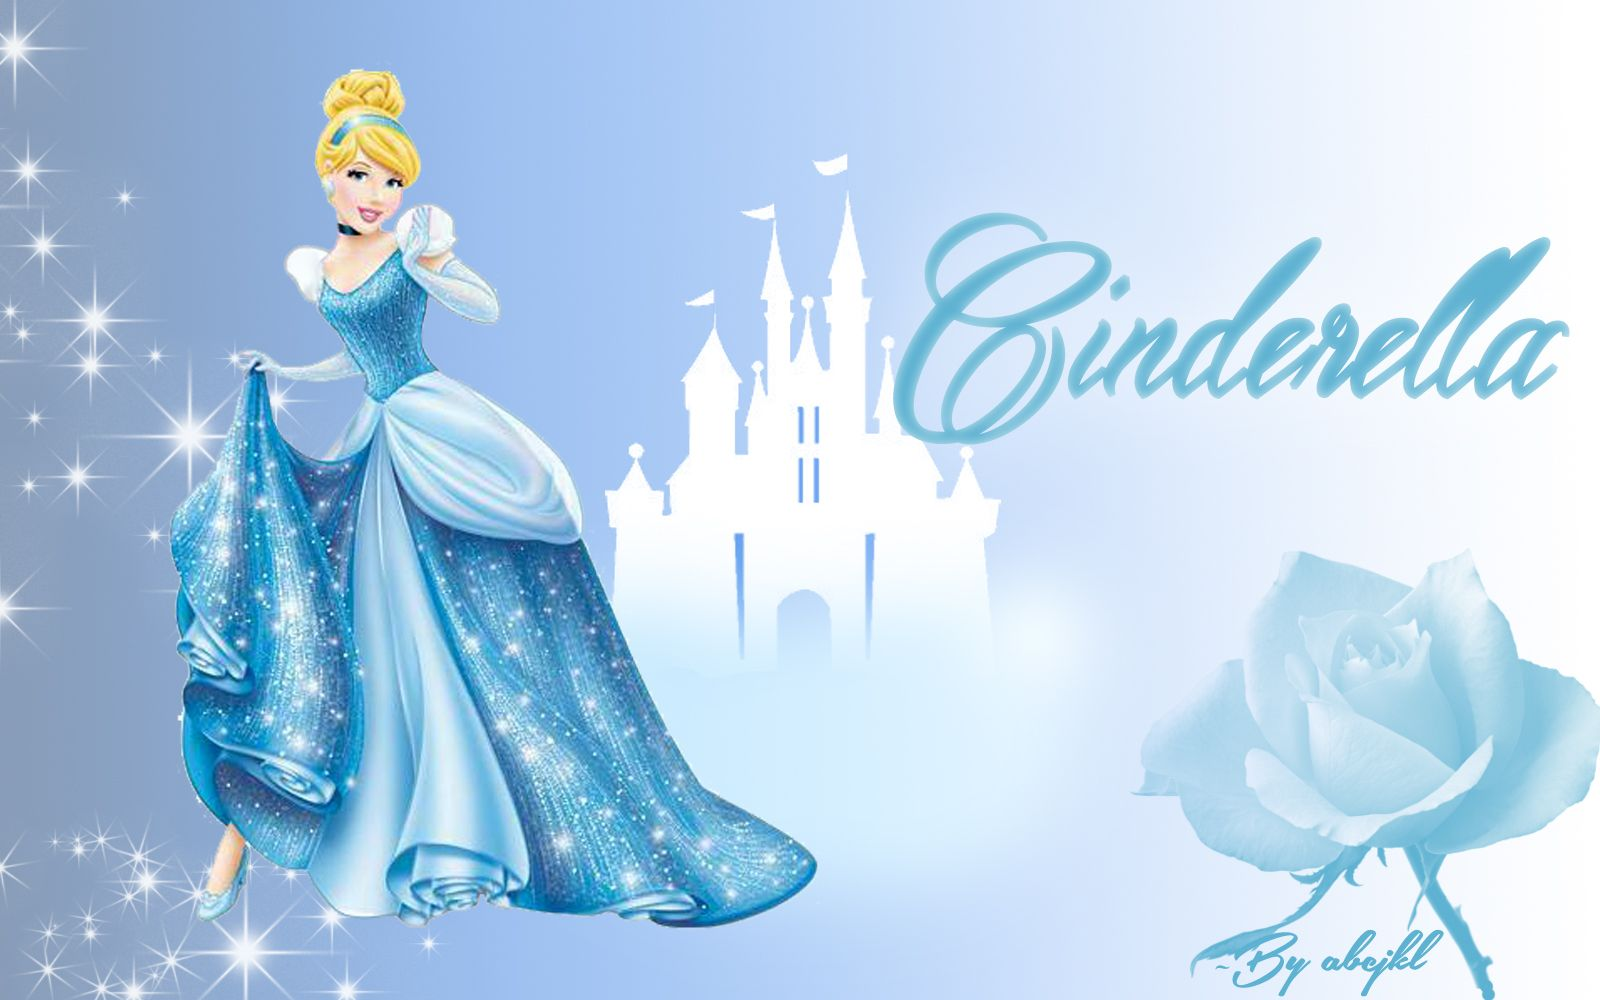 Download cinderella hd wallpaper full hd wallpapers 19201080 pics download cinderella hd wallpaper full hd wallpapers 19201080 pics of cinderella wallpapers 50 altavistaventures Image collections